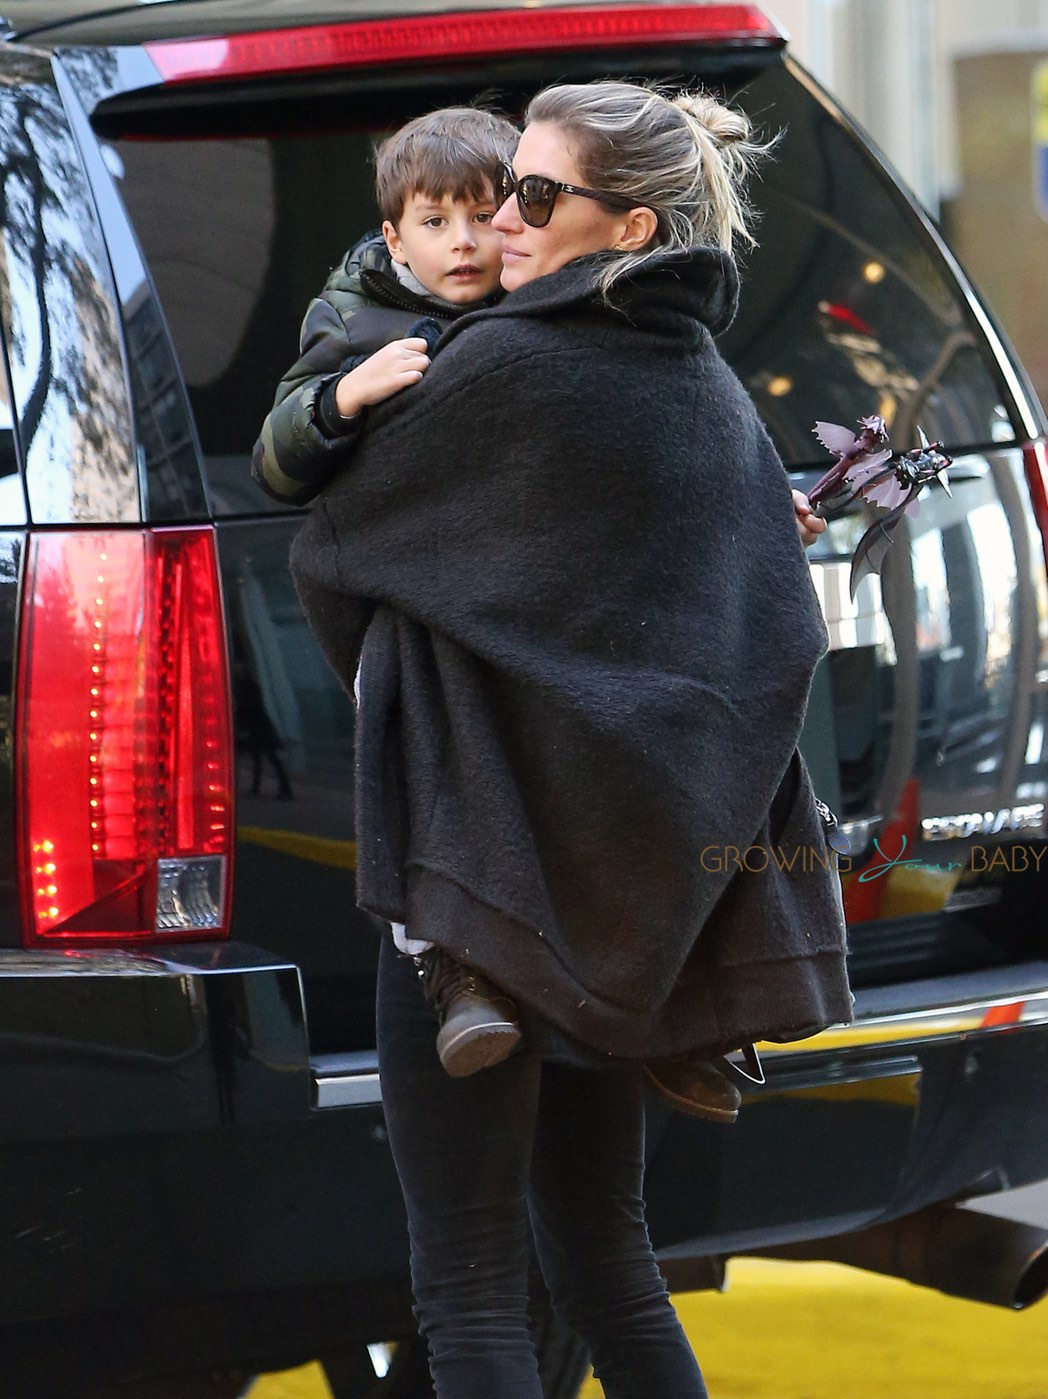 EXCLUSIVE: Gisele Bundchen and son Benjamin meet up with Tom